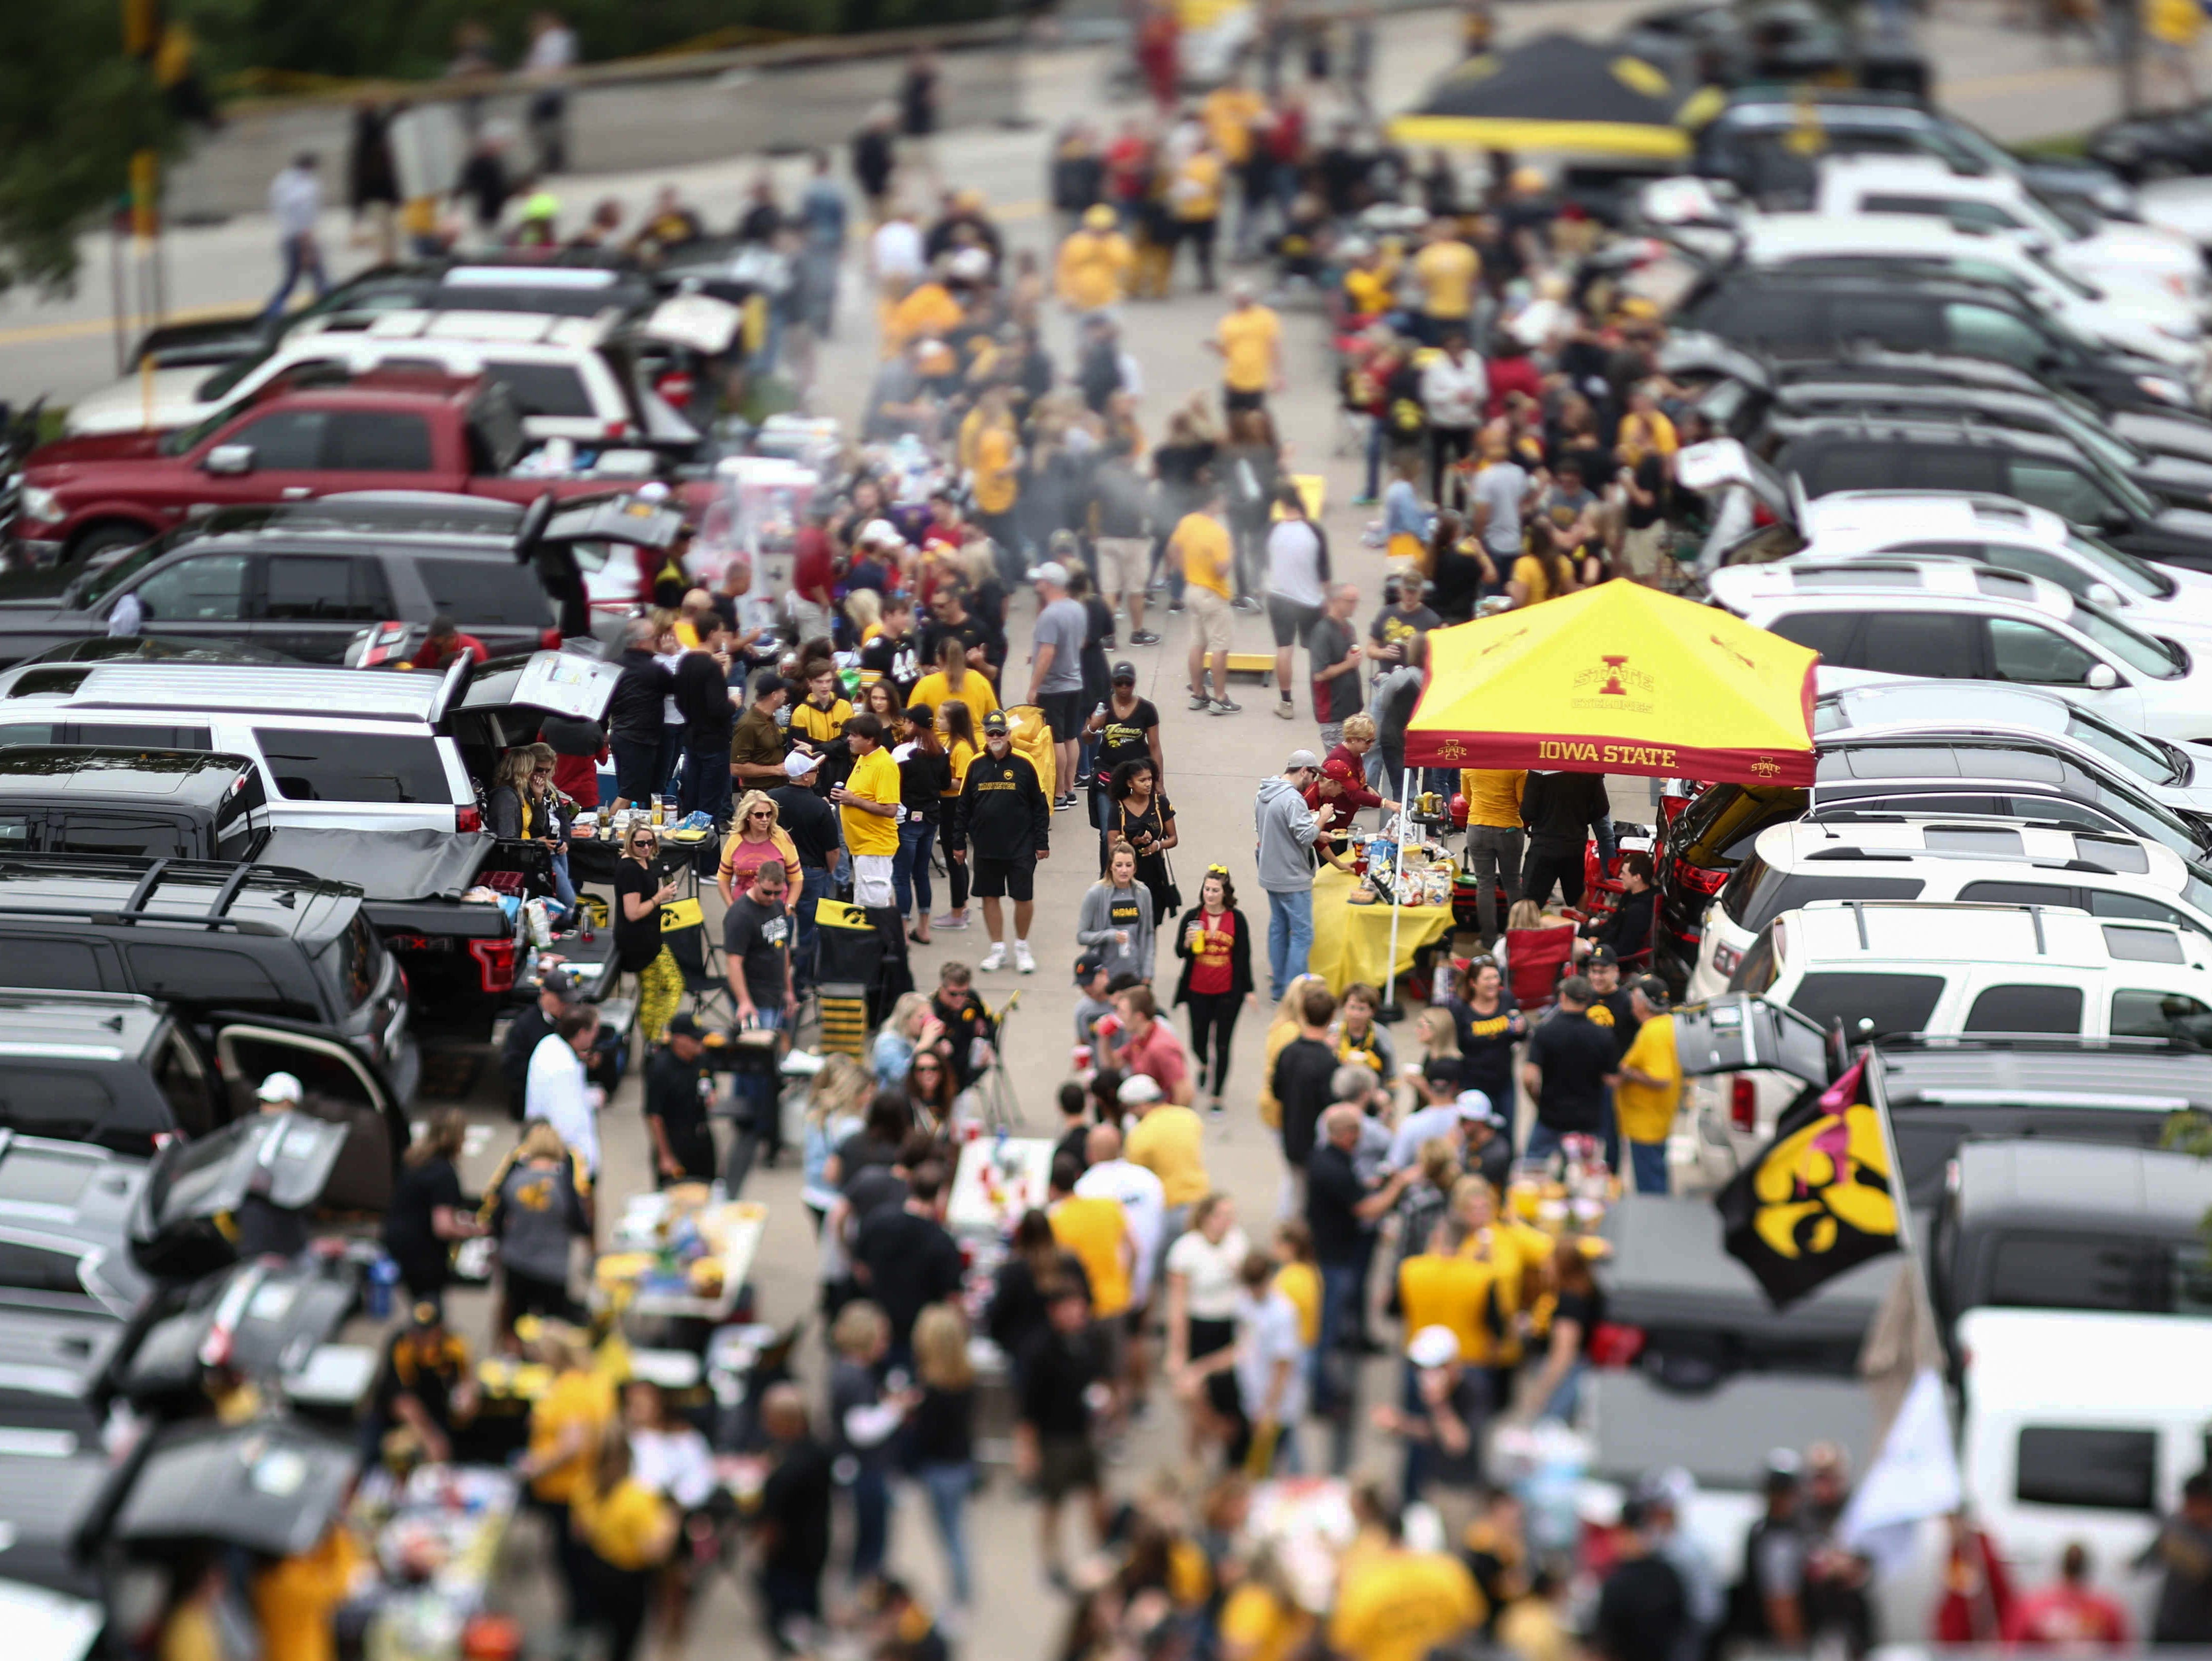 Tailgaters mill about the grounds of Kinnick Stadium during the Cy-Hawk game on Saturday, Sept. 8, 2018, in Iowa City.